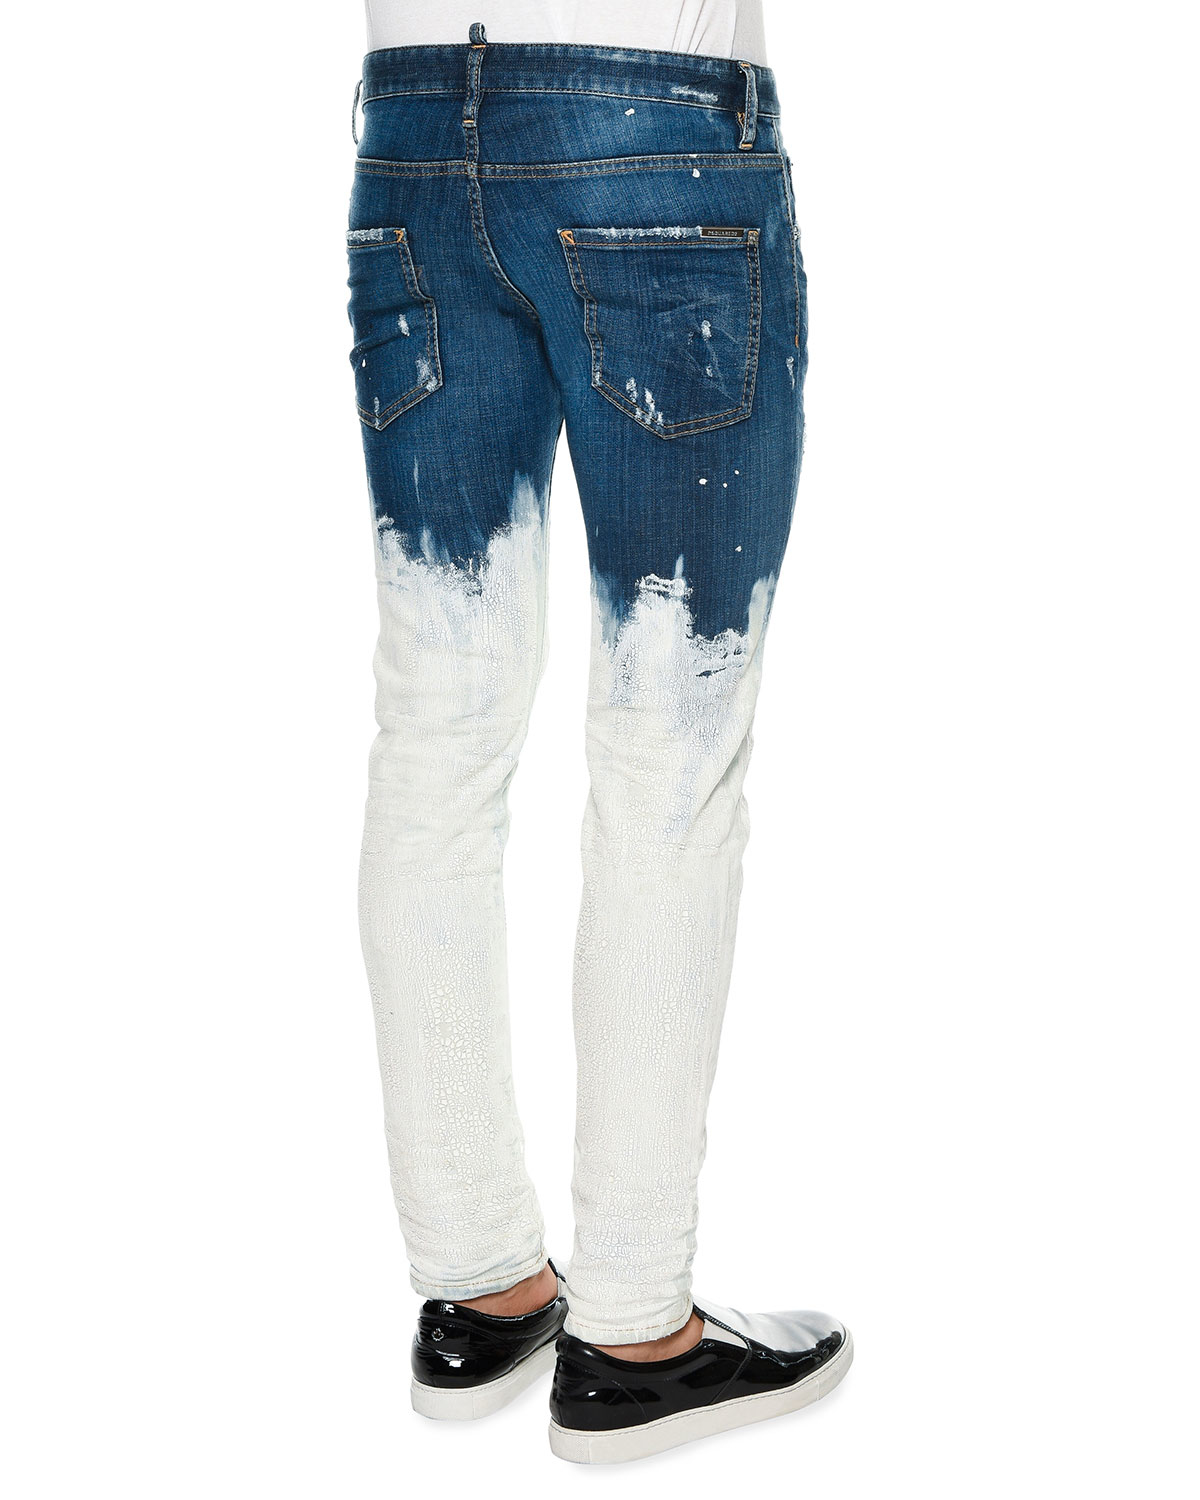 Lyst - Dsquared² Bleach-dipped Slim-fit Denim Jeans in ...